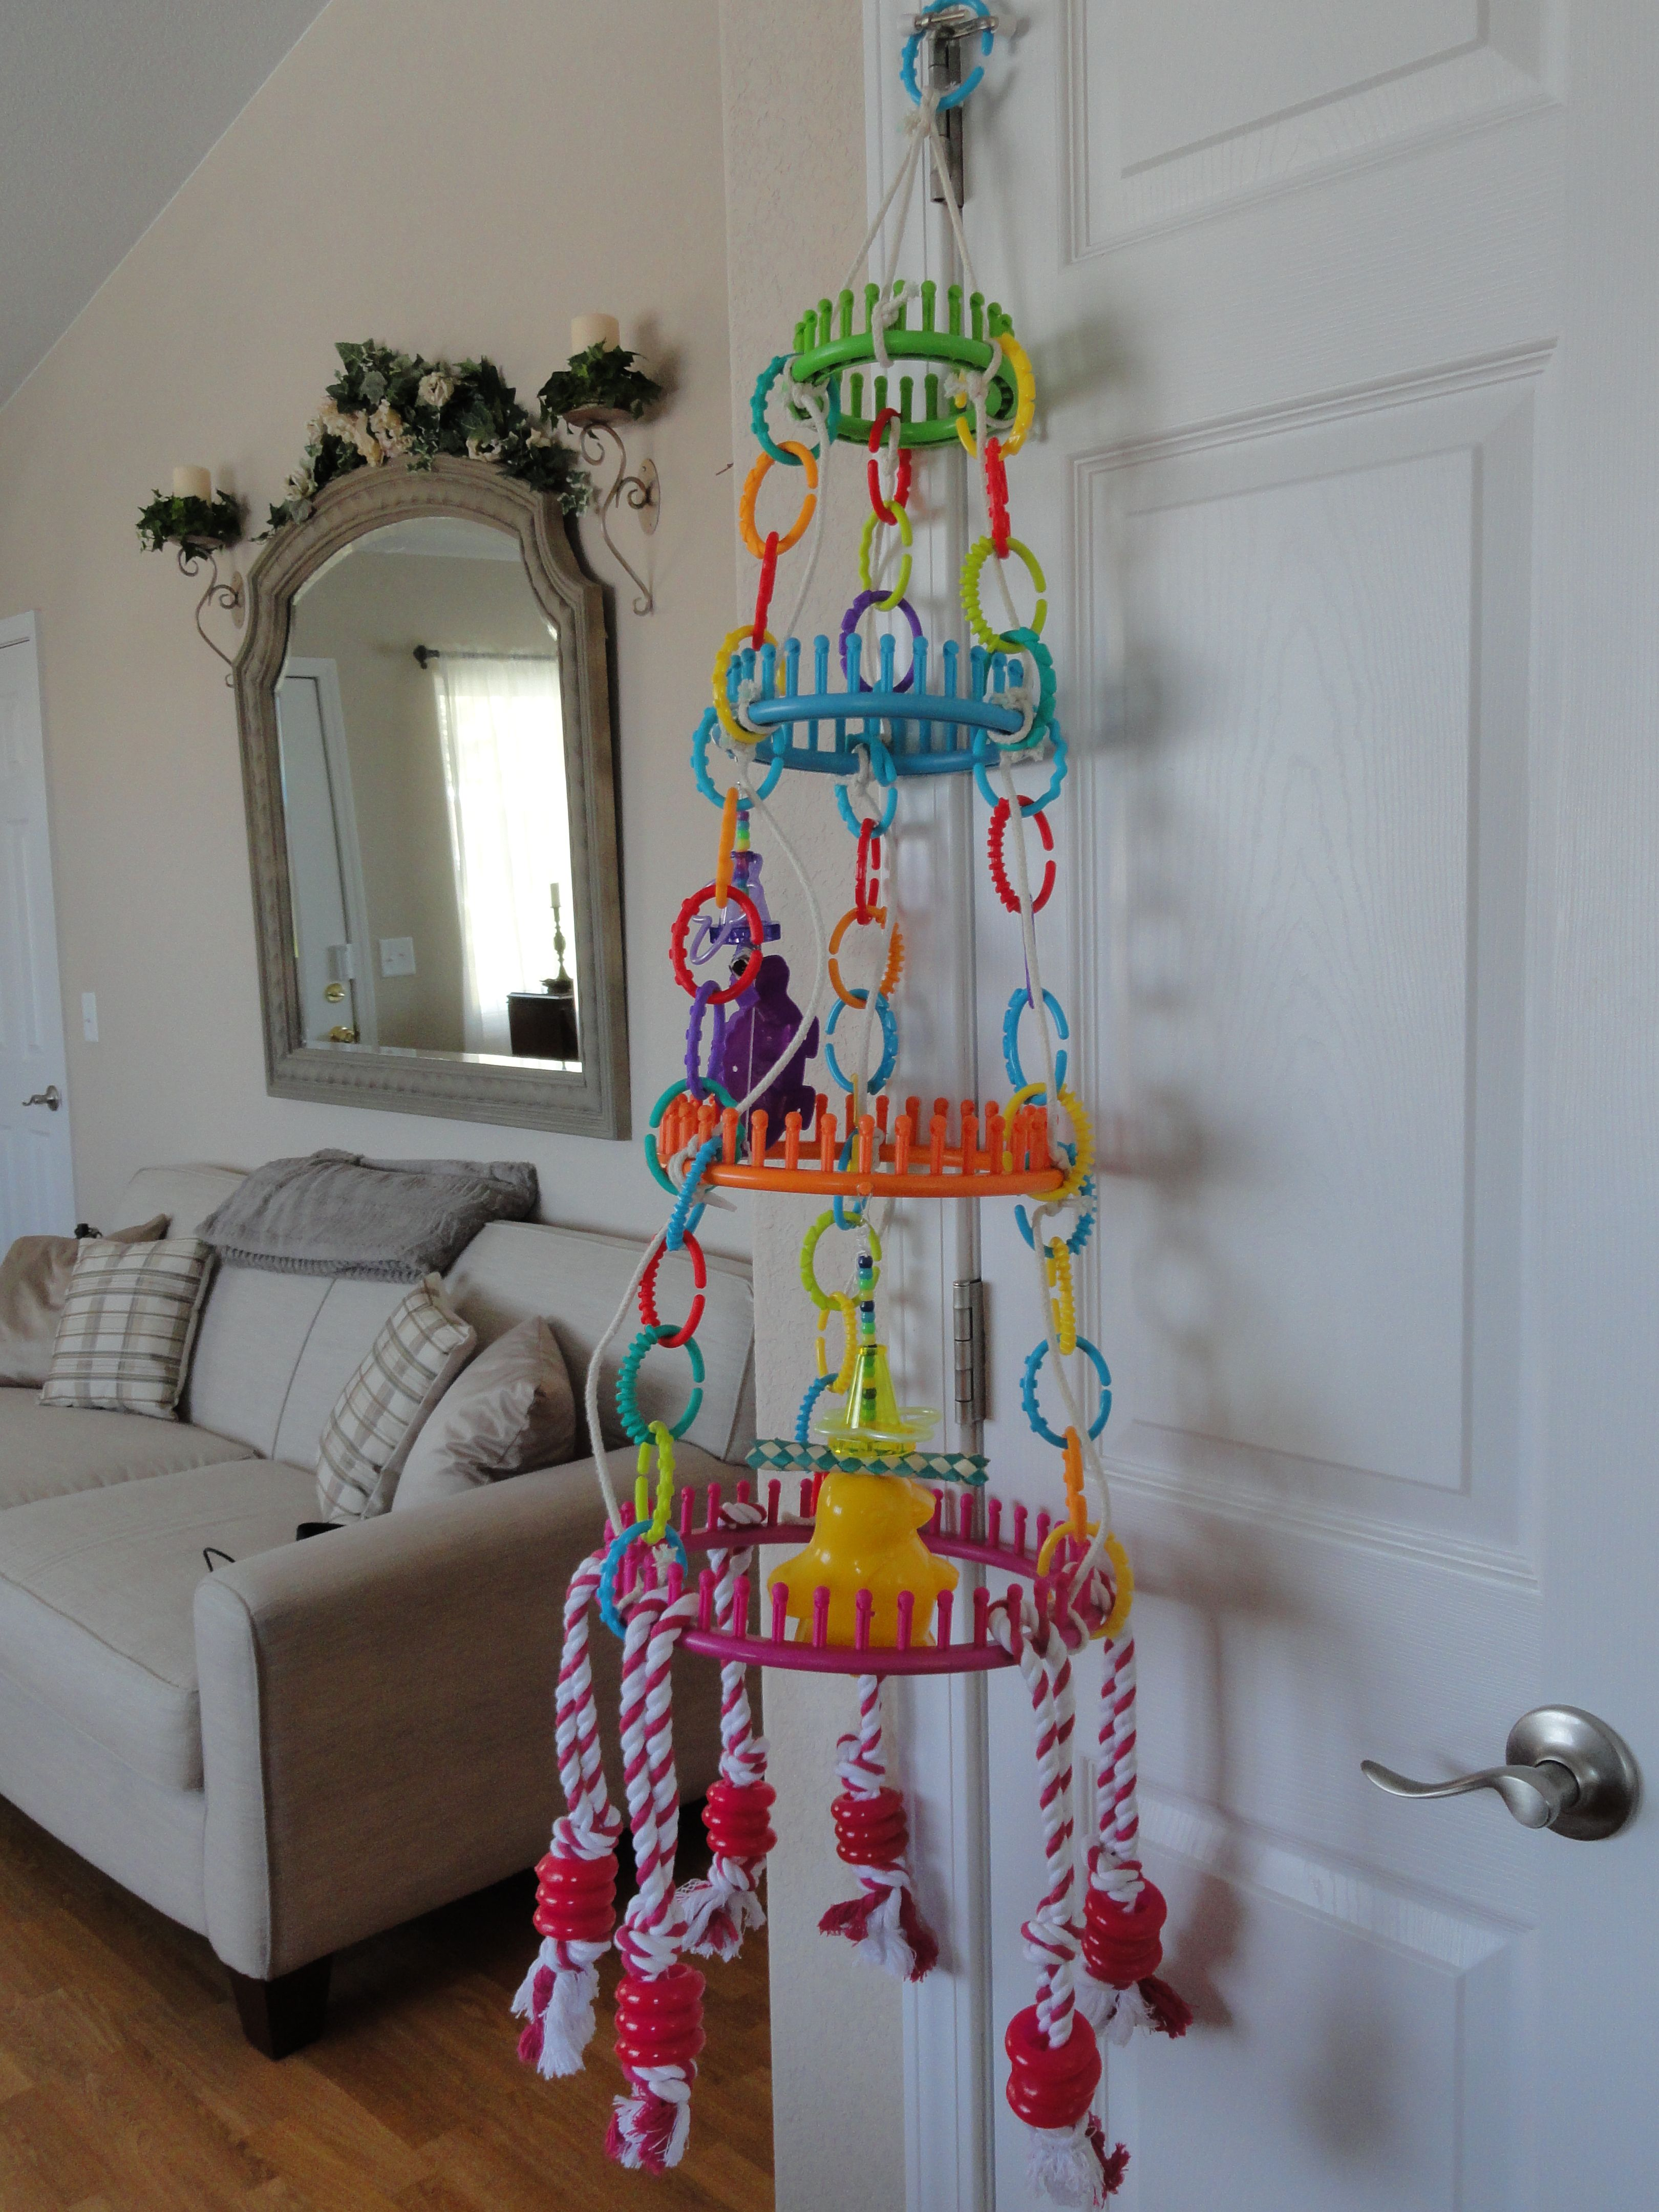 Peppins Rainbow Falls, hoop hanger, toy holder that I made